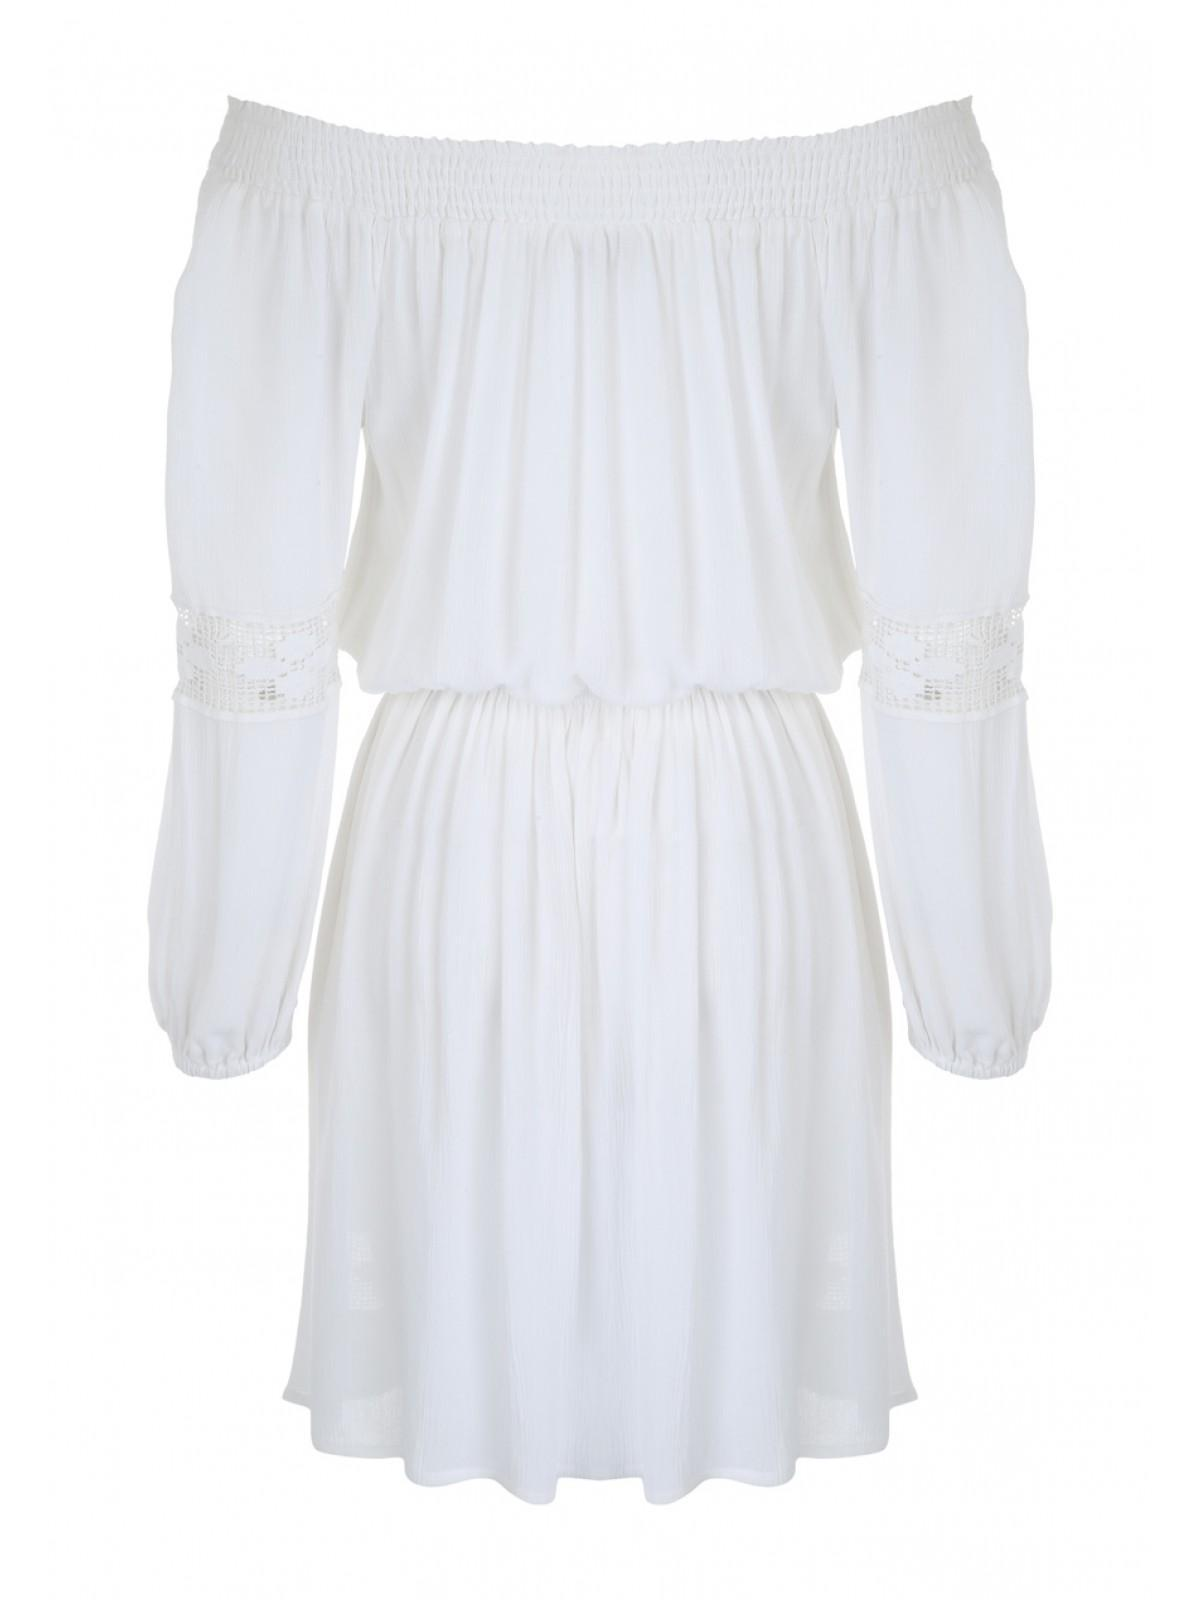 Womens White Cheesecloth Gypsy Dress - Peacocks